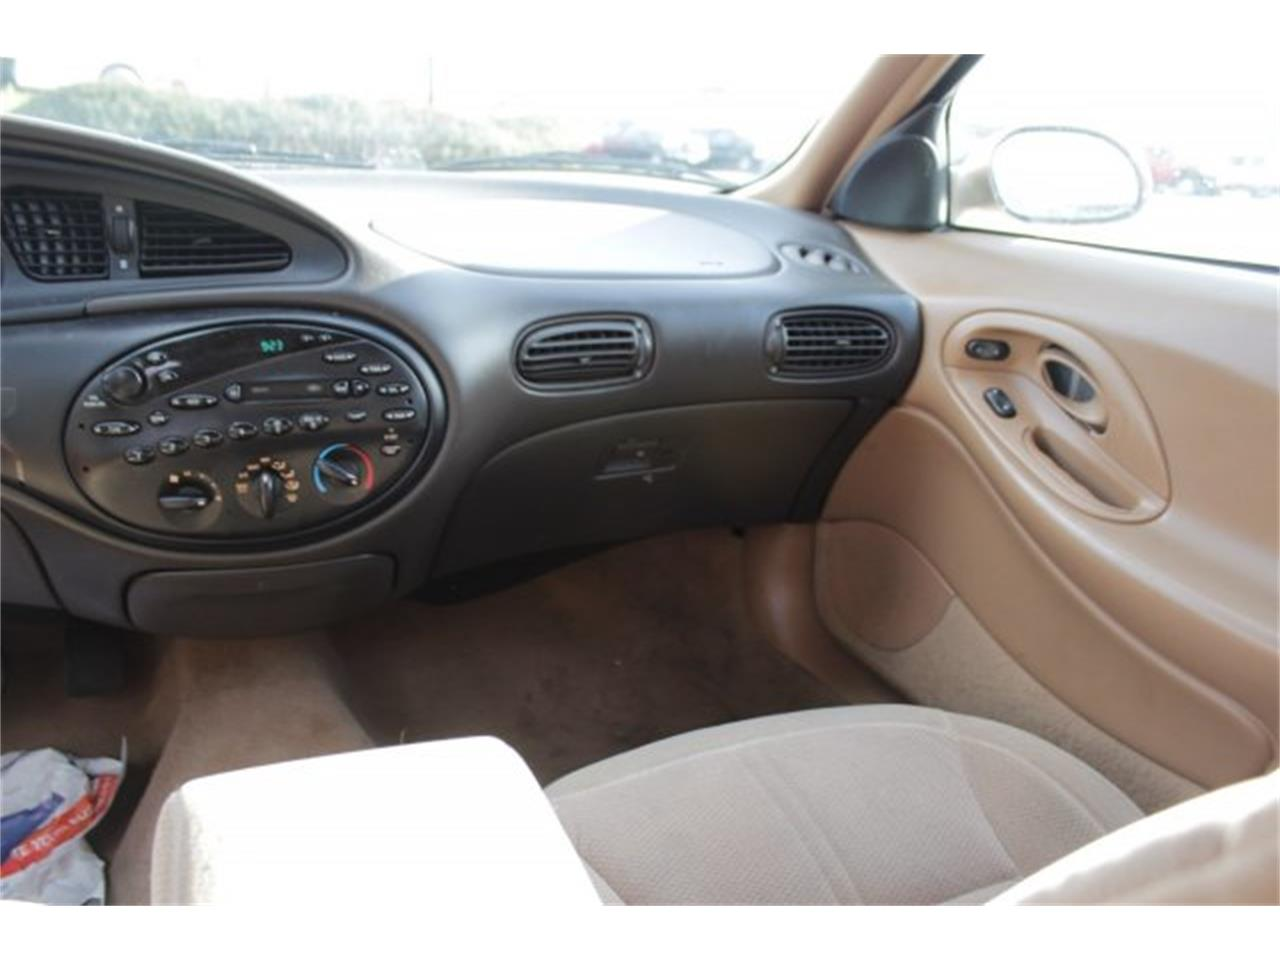 Large Picture of '96 Ford Taurus located in Washington - $2,995.00 Offered by Carson Cars - JJGX